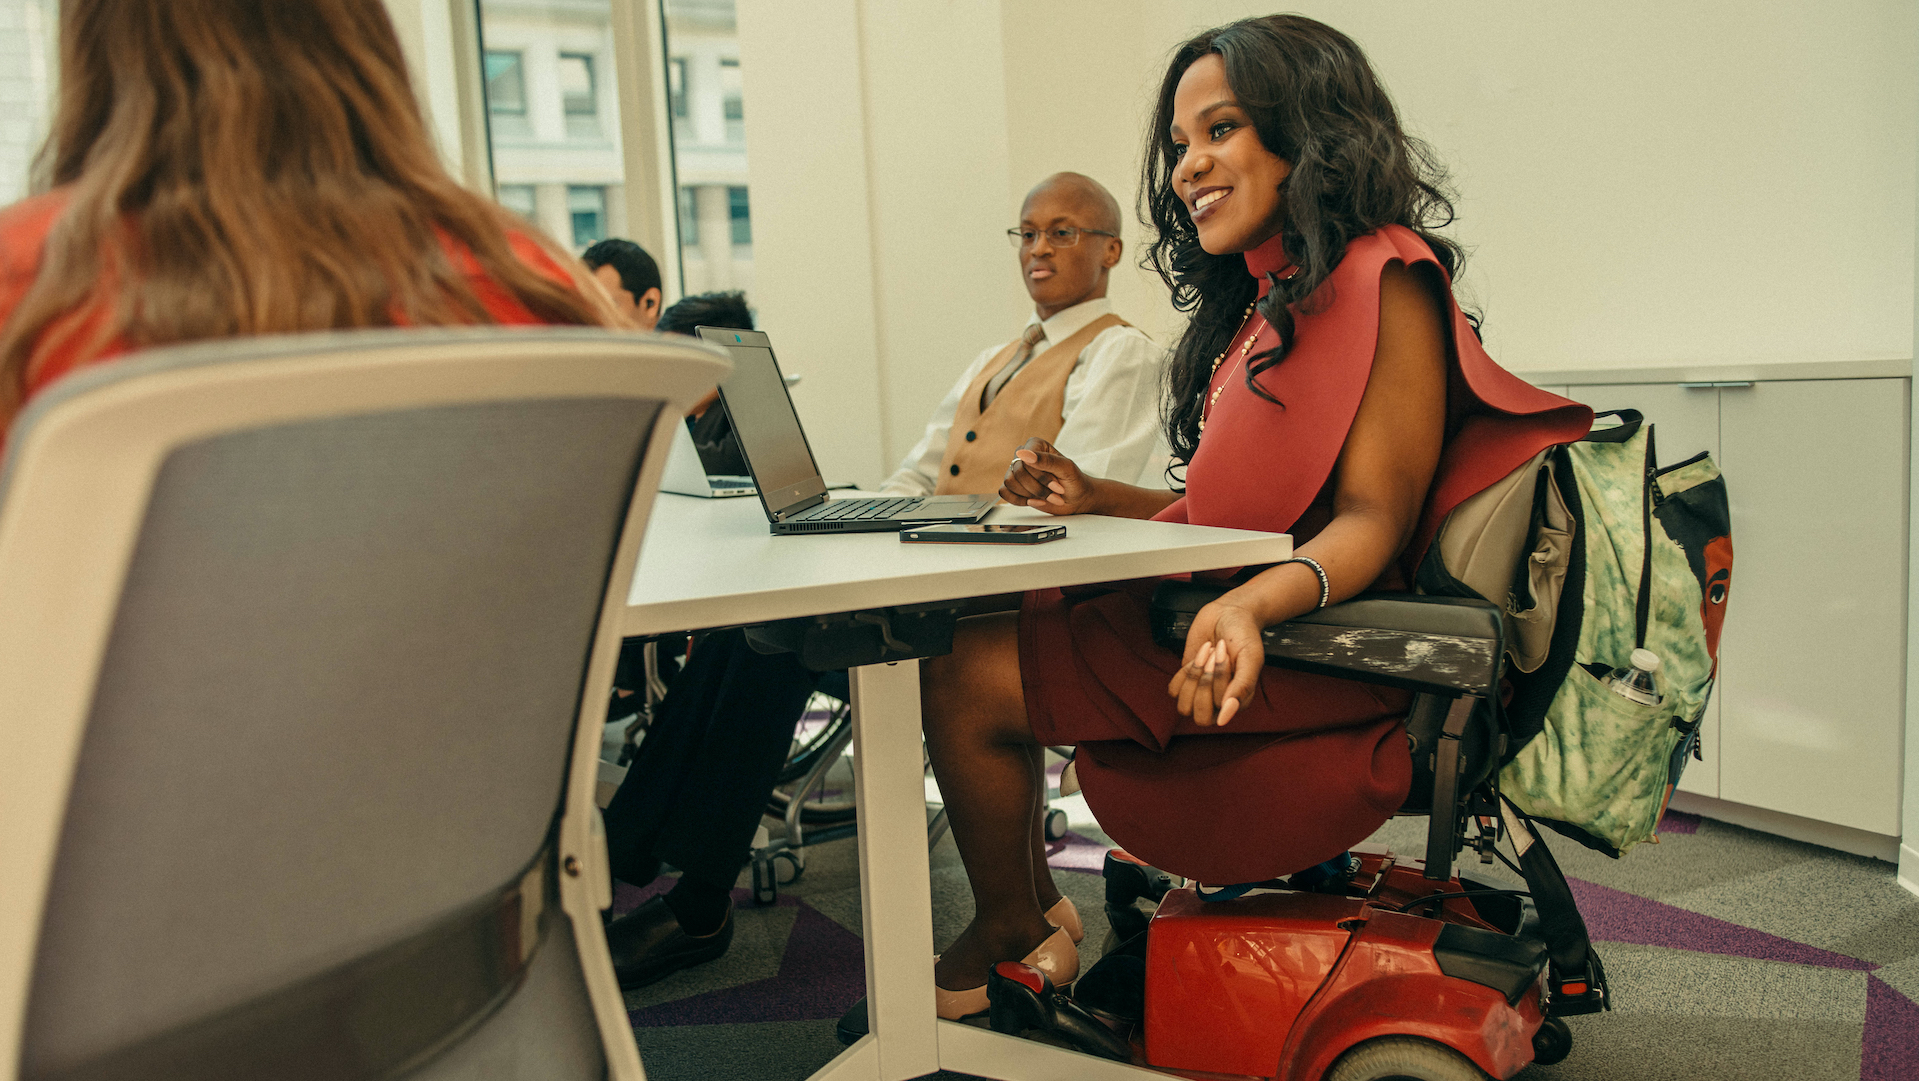 A person in a power wheelchair sits at a meeting table with her laptop open in front of her. She is wearing a red dress and has long dark hair.